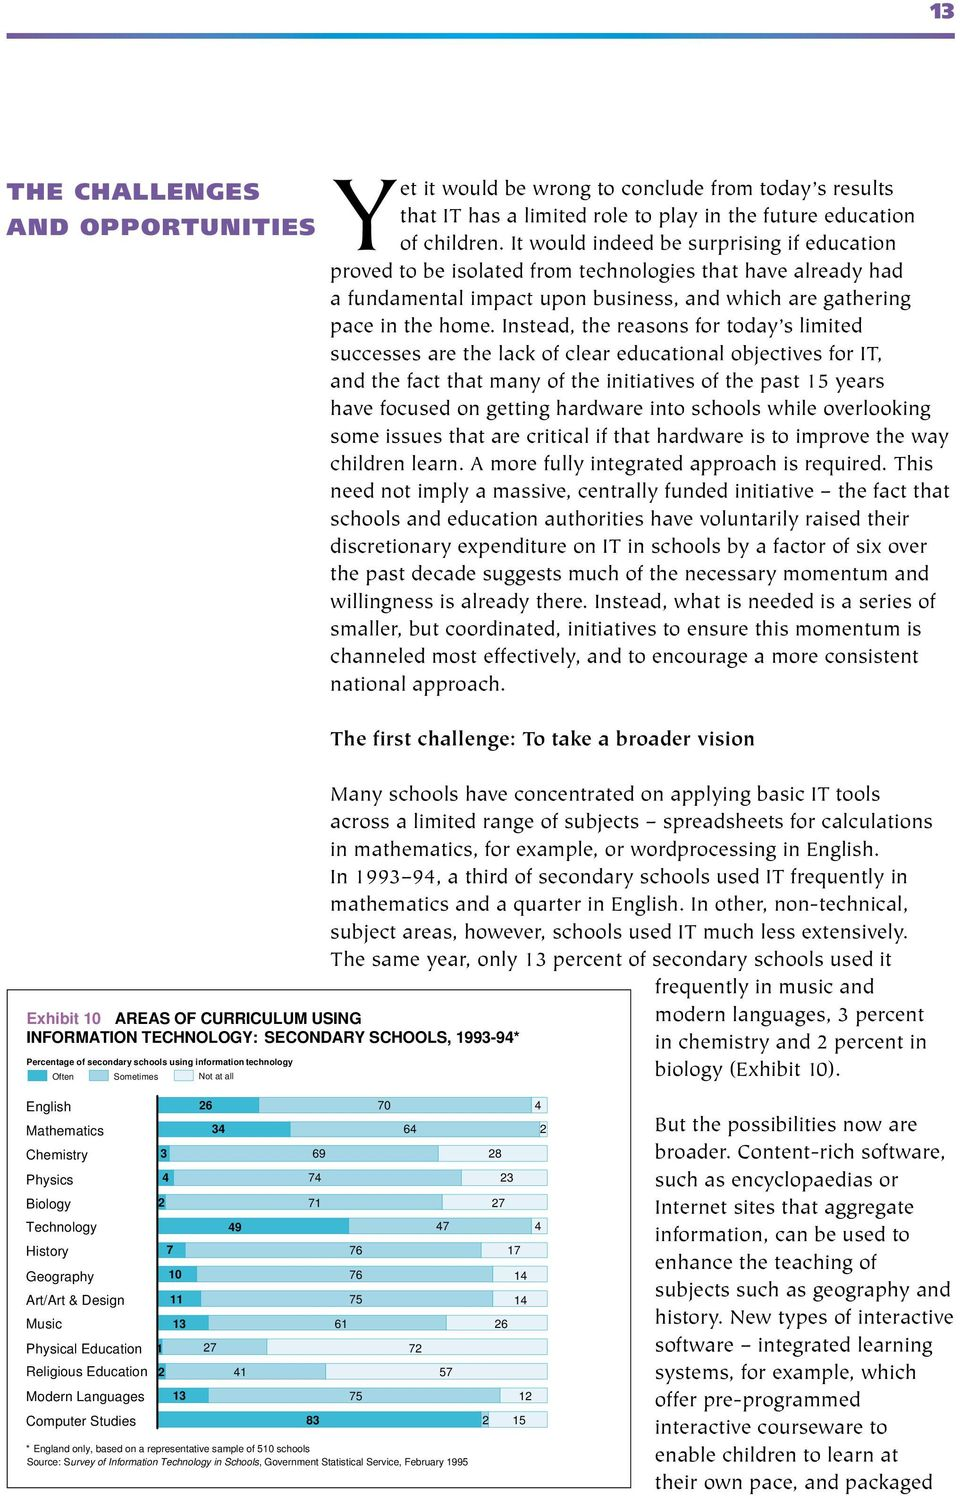 Instead, the reasons for today s limited successes are the lack of clear educational objectives for IT, and the fact that many of the initiatives of the past 15 years have focused on getting hardware